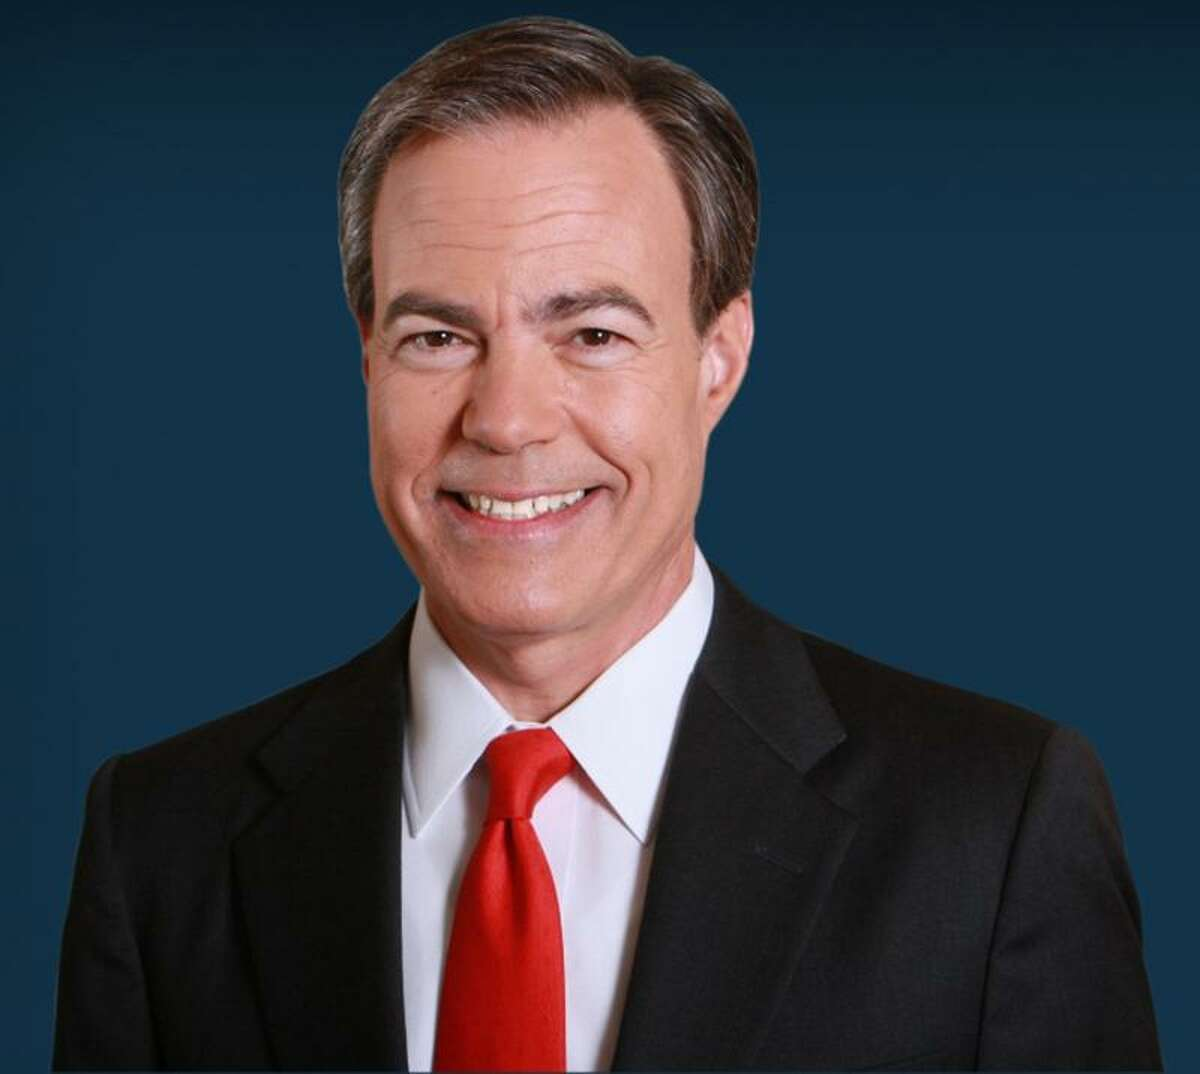 Joe Straus, the retiring speaker of the Texas House, reportedly put $1 million of his campaign money into an effort to re-elect moderate state lawmakers.